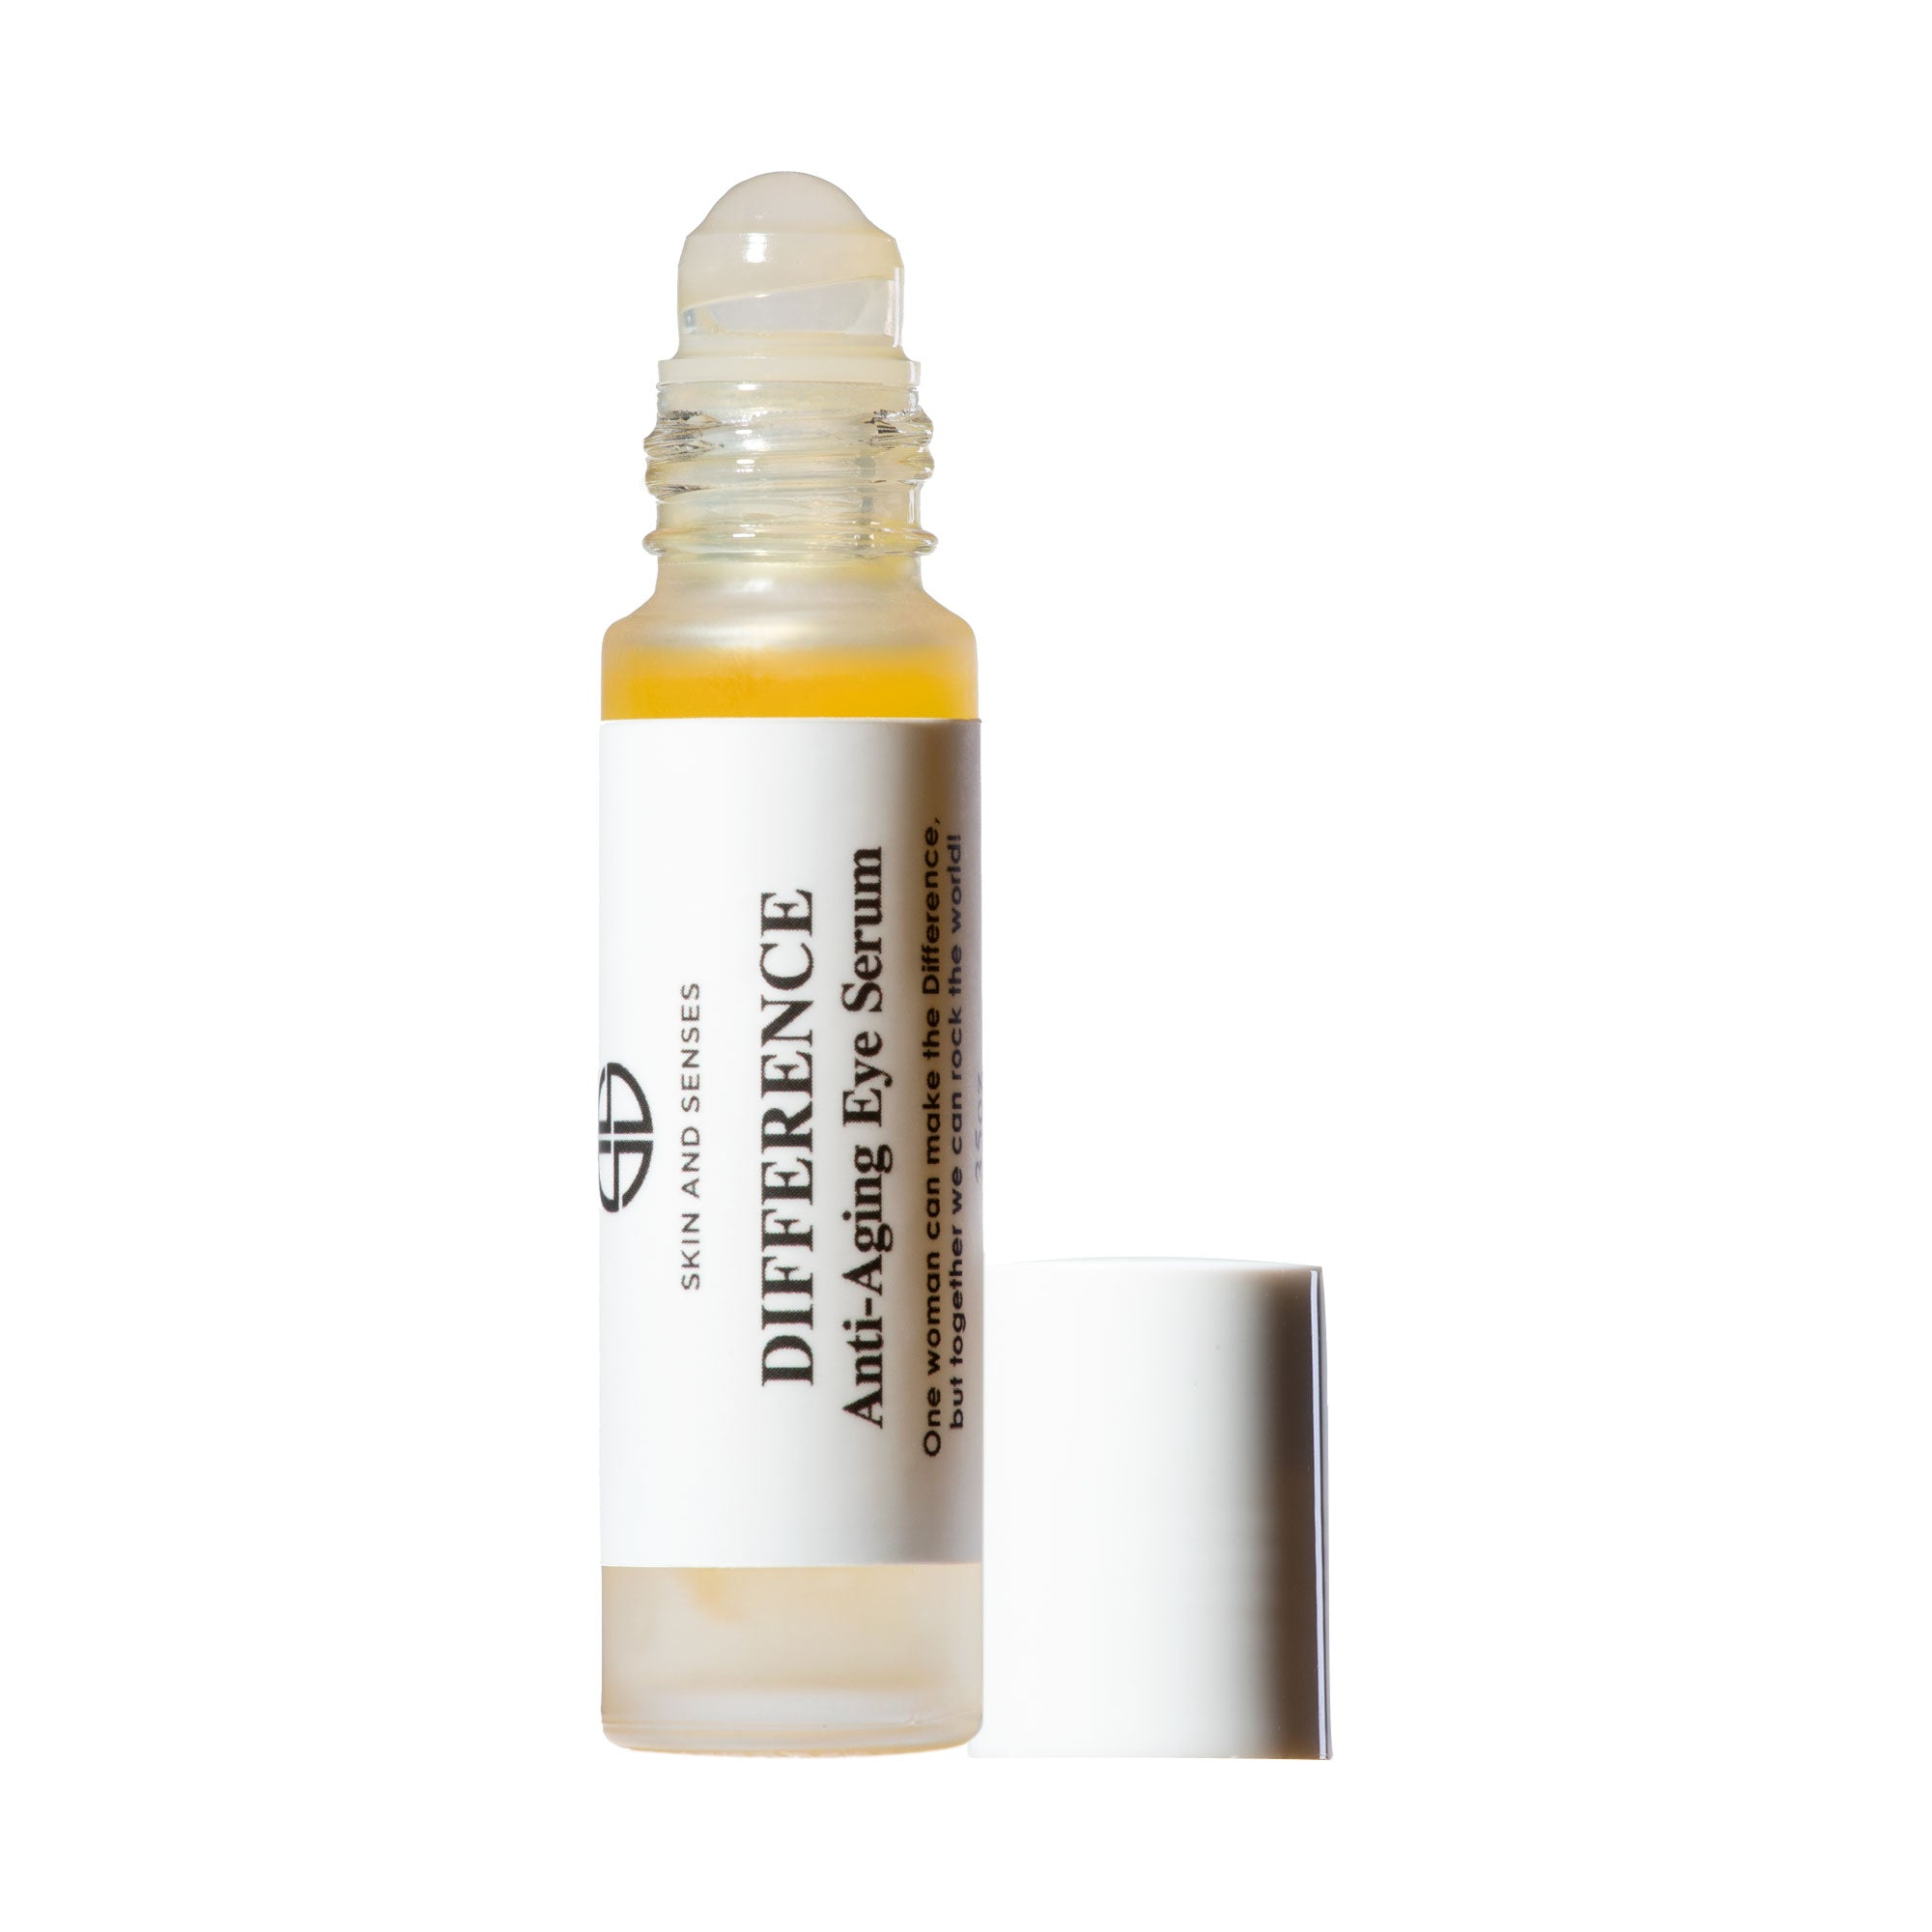 Difference Anti-Aging Eye Serum